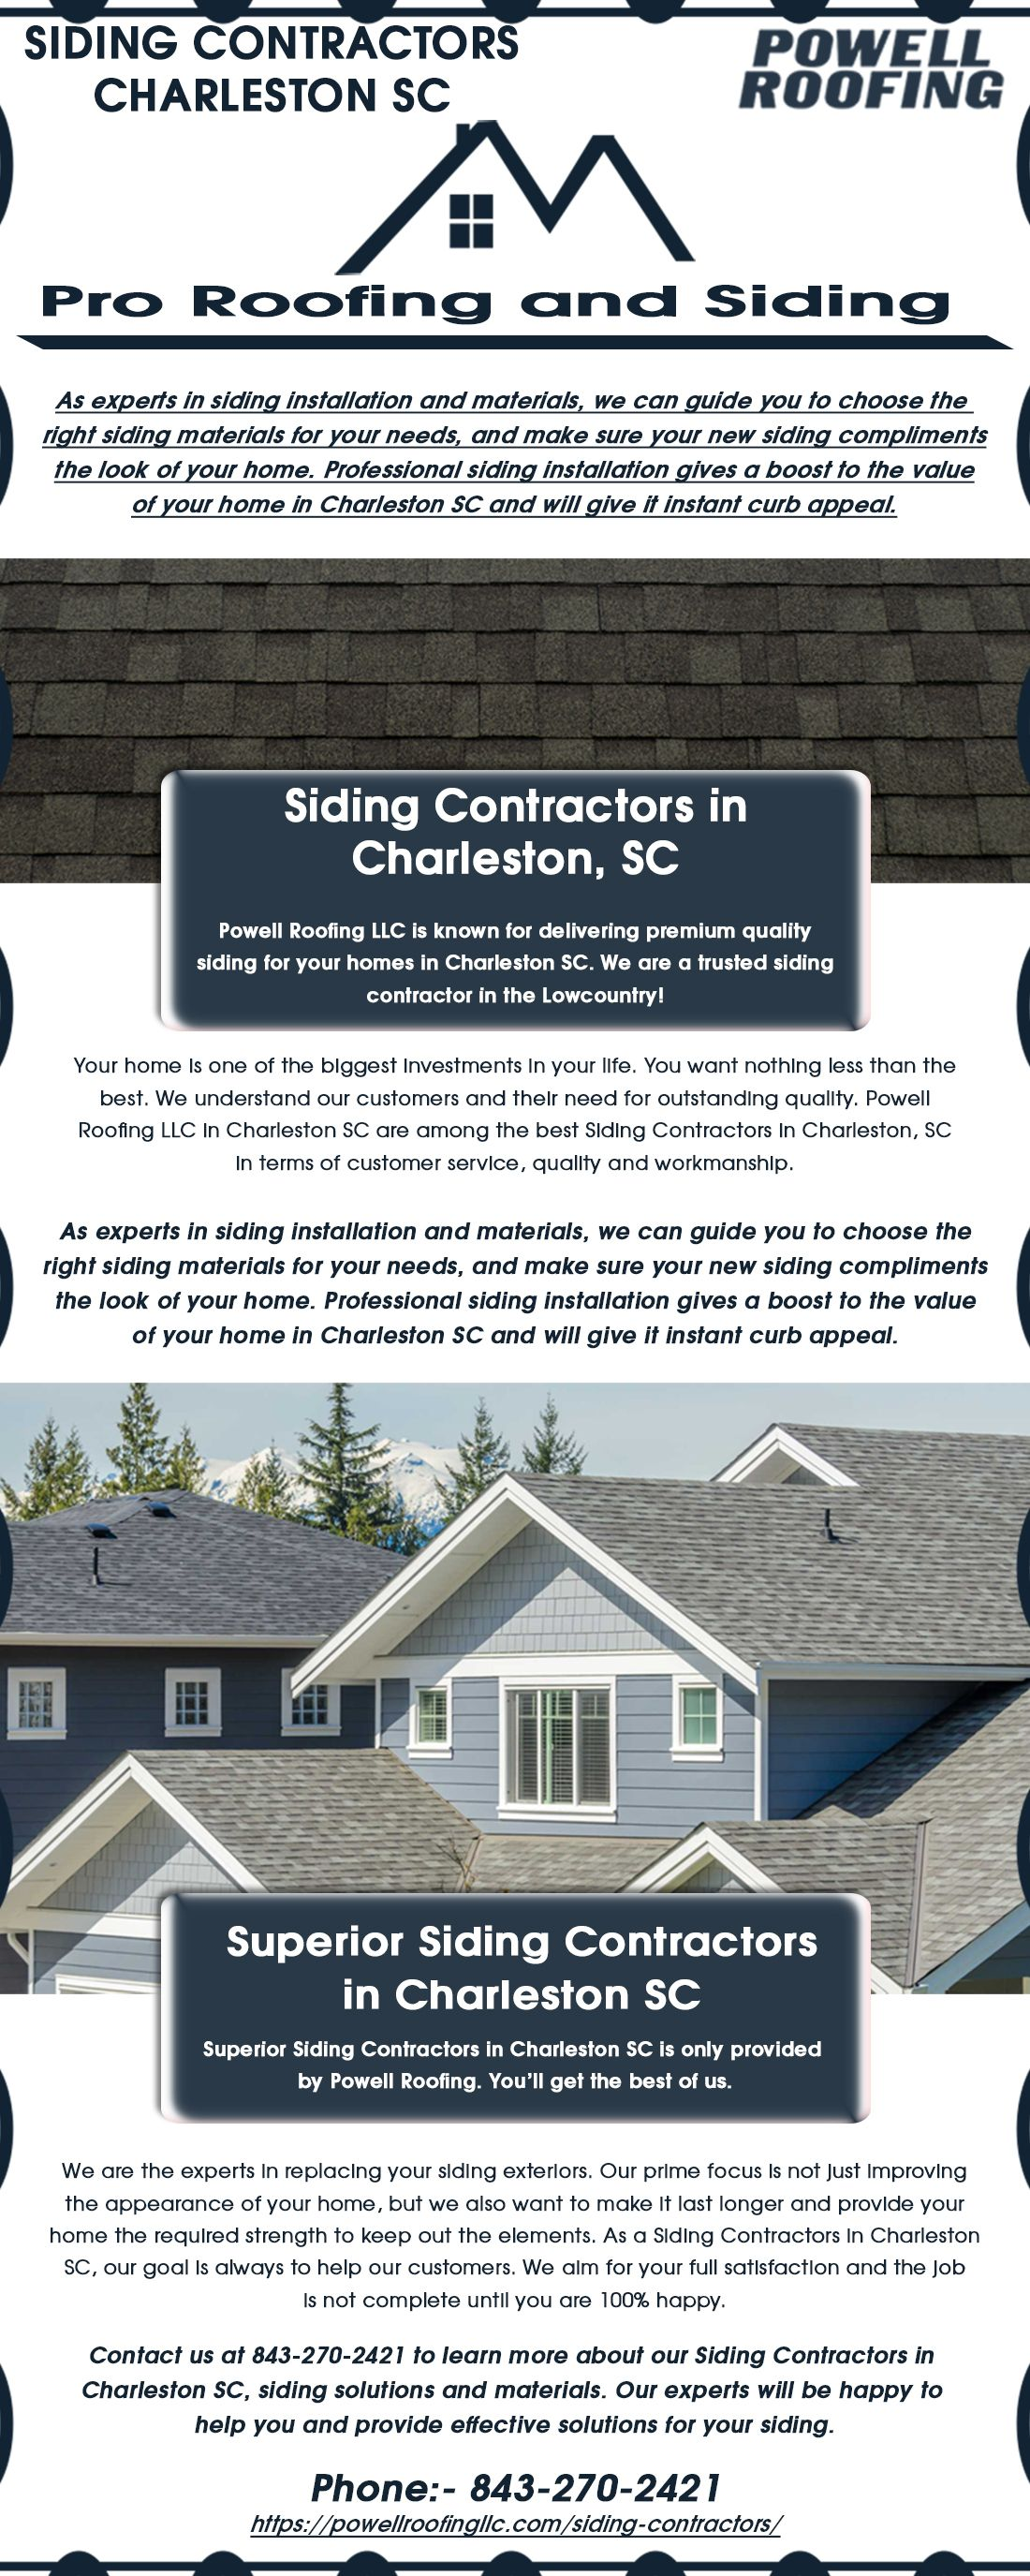 Superior Siding Contractors In Charleston Sc Is Only Provided By Powell Roofing You Ll Get The Best Of Us Siding Contractors Siding Siding Repair